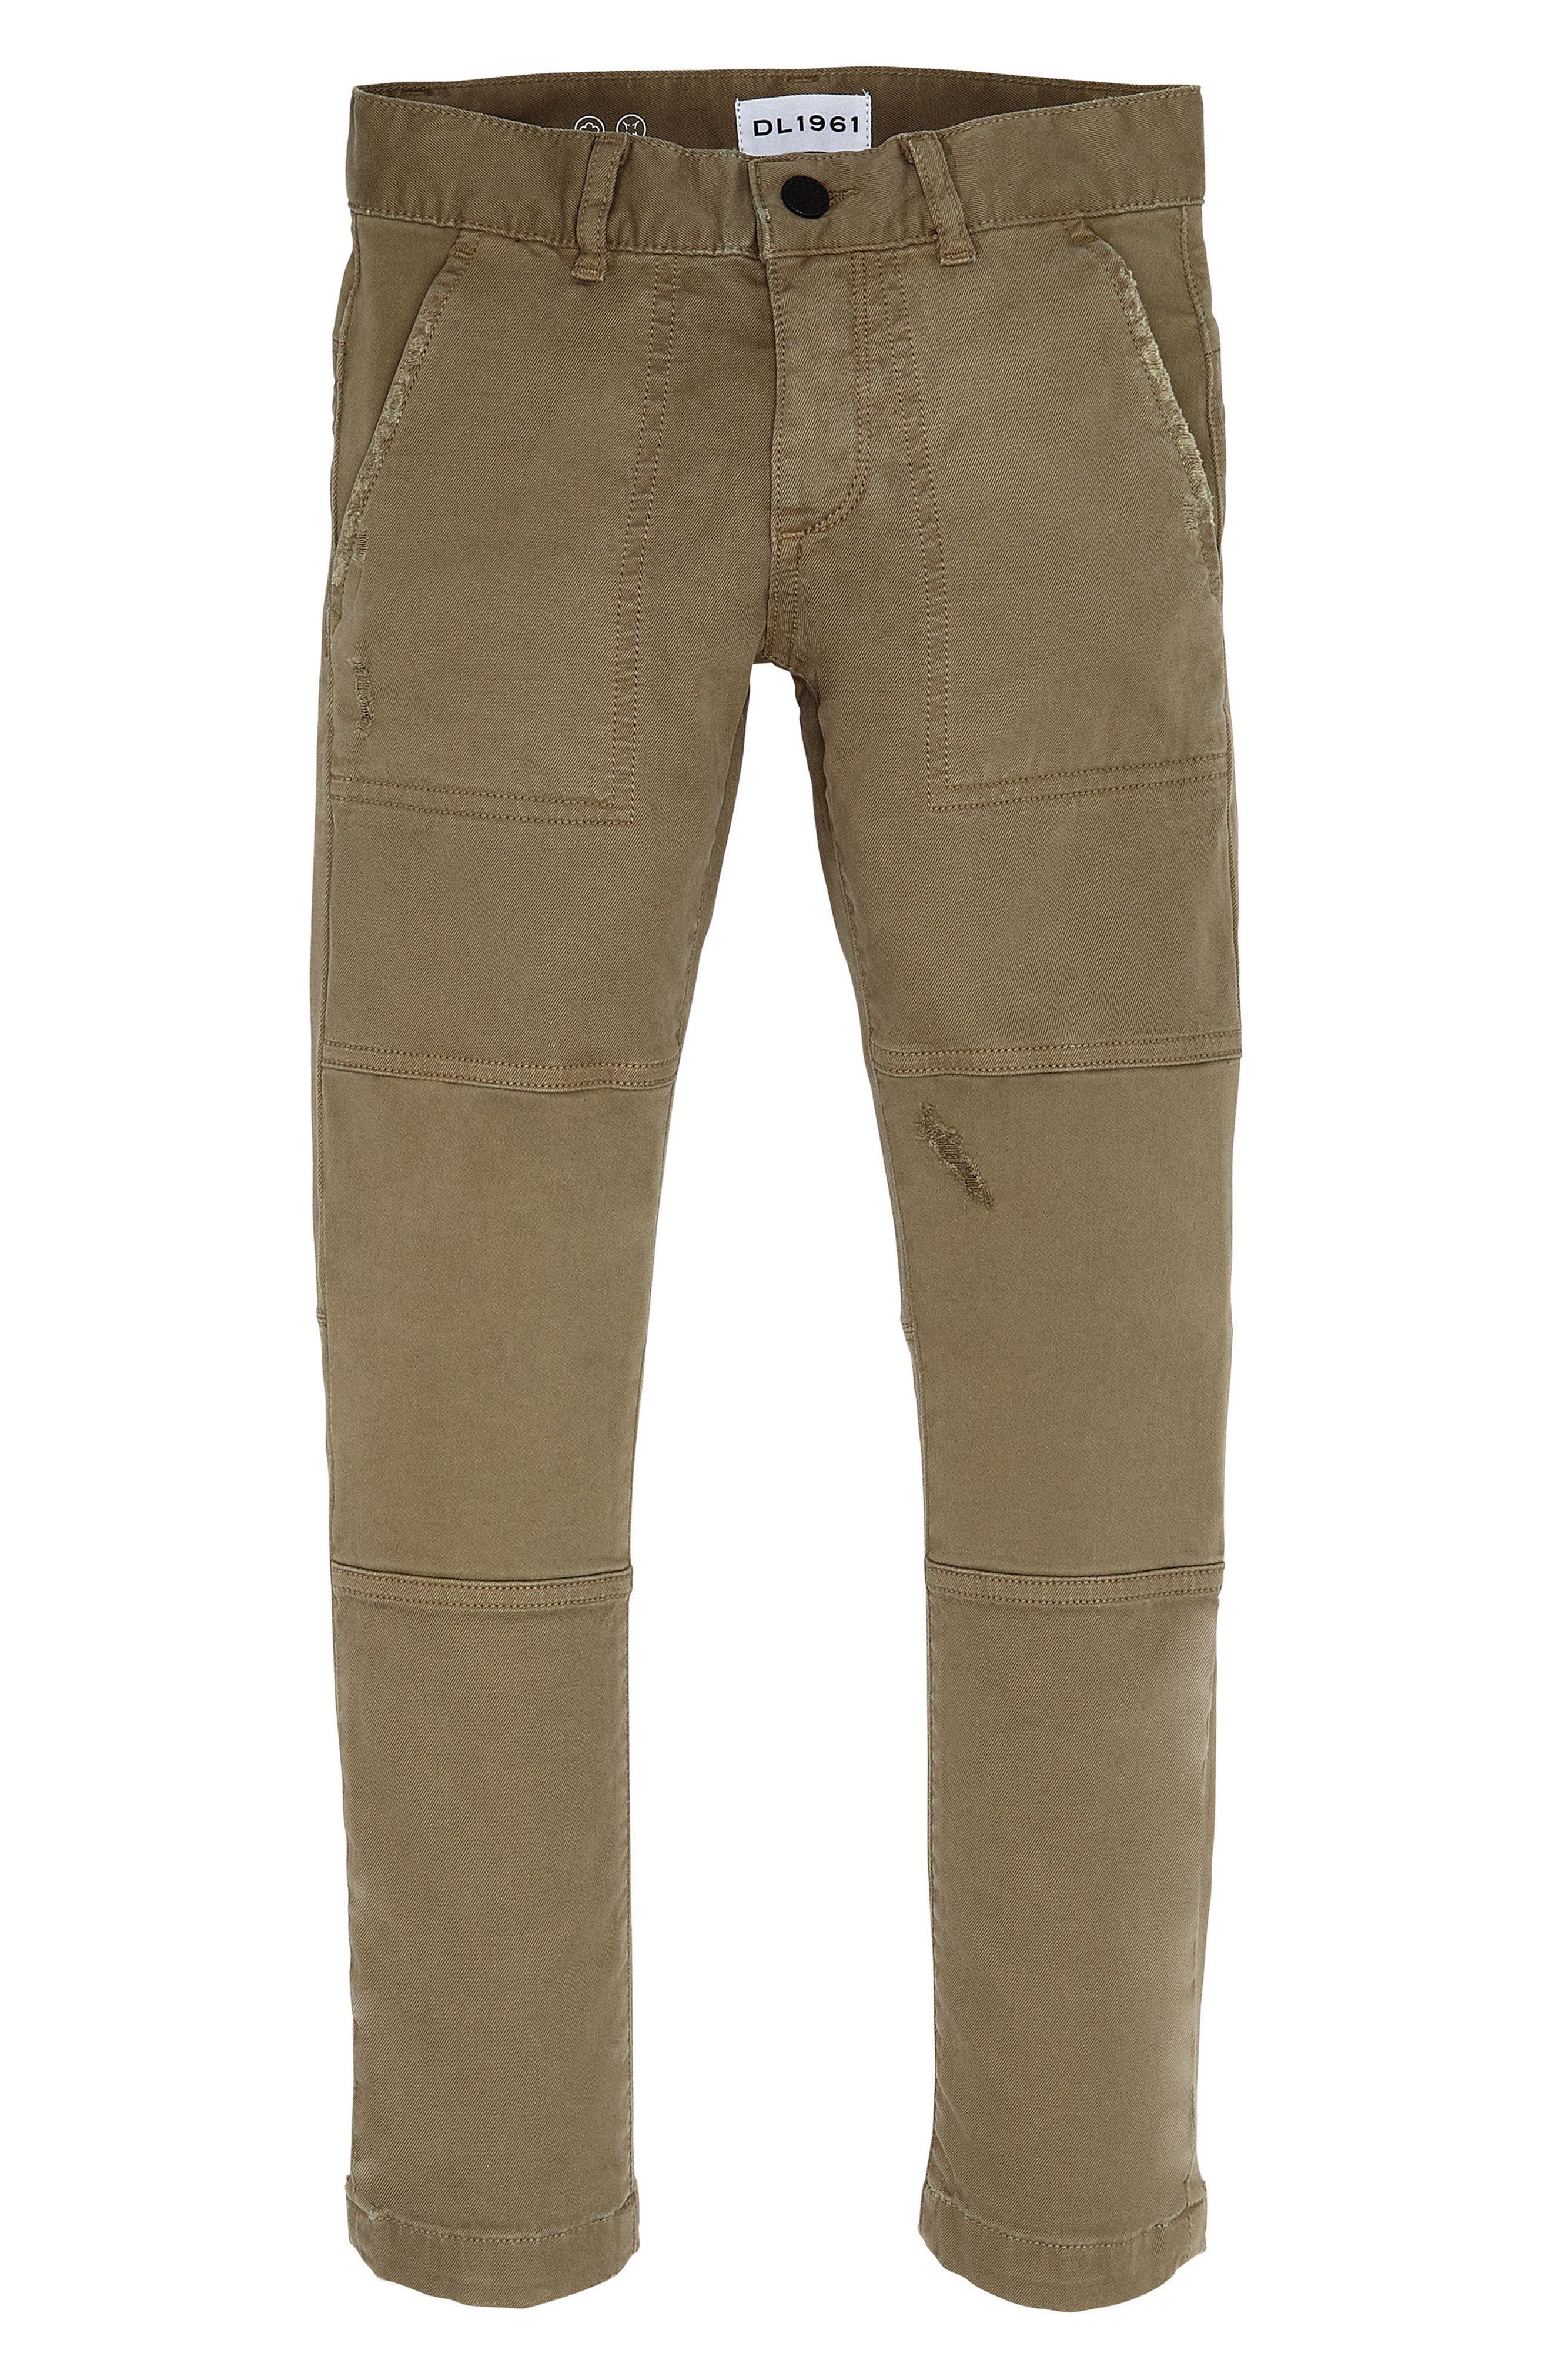 Hawke Skinny Fit Utility Jeans,                             Main thumbnail 1, color,                             Regime